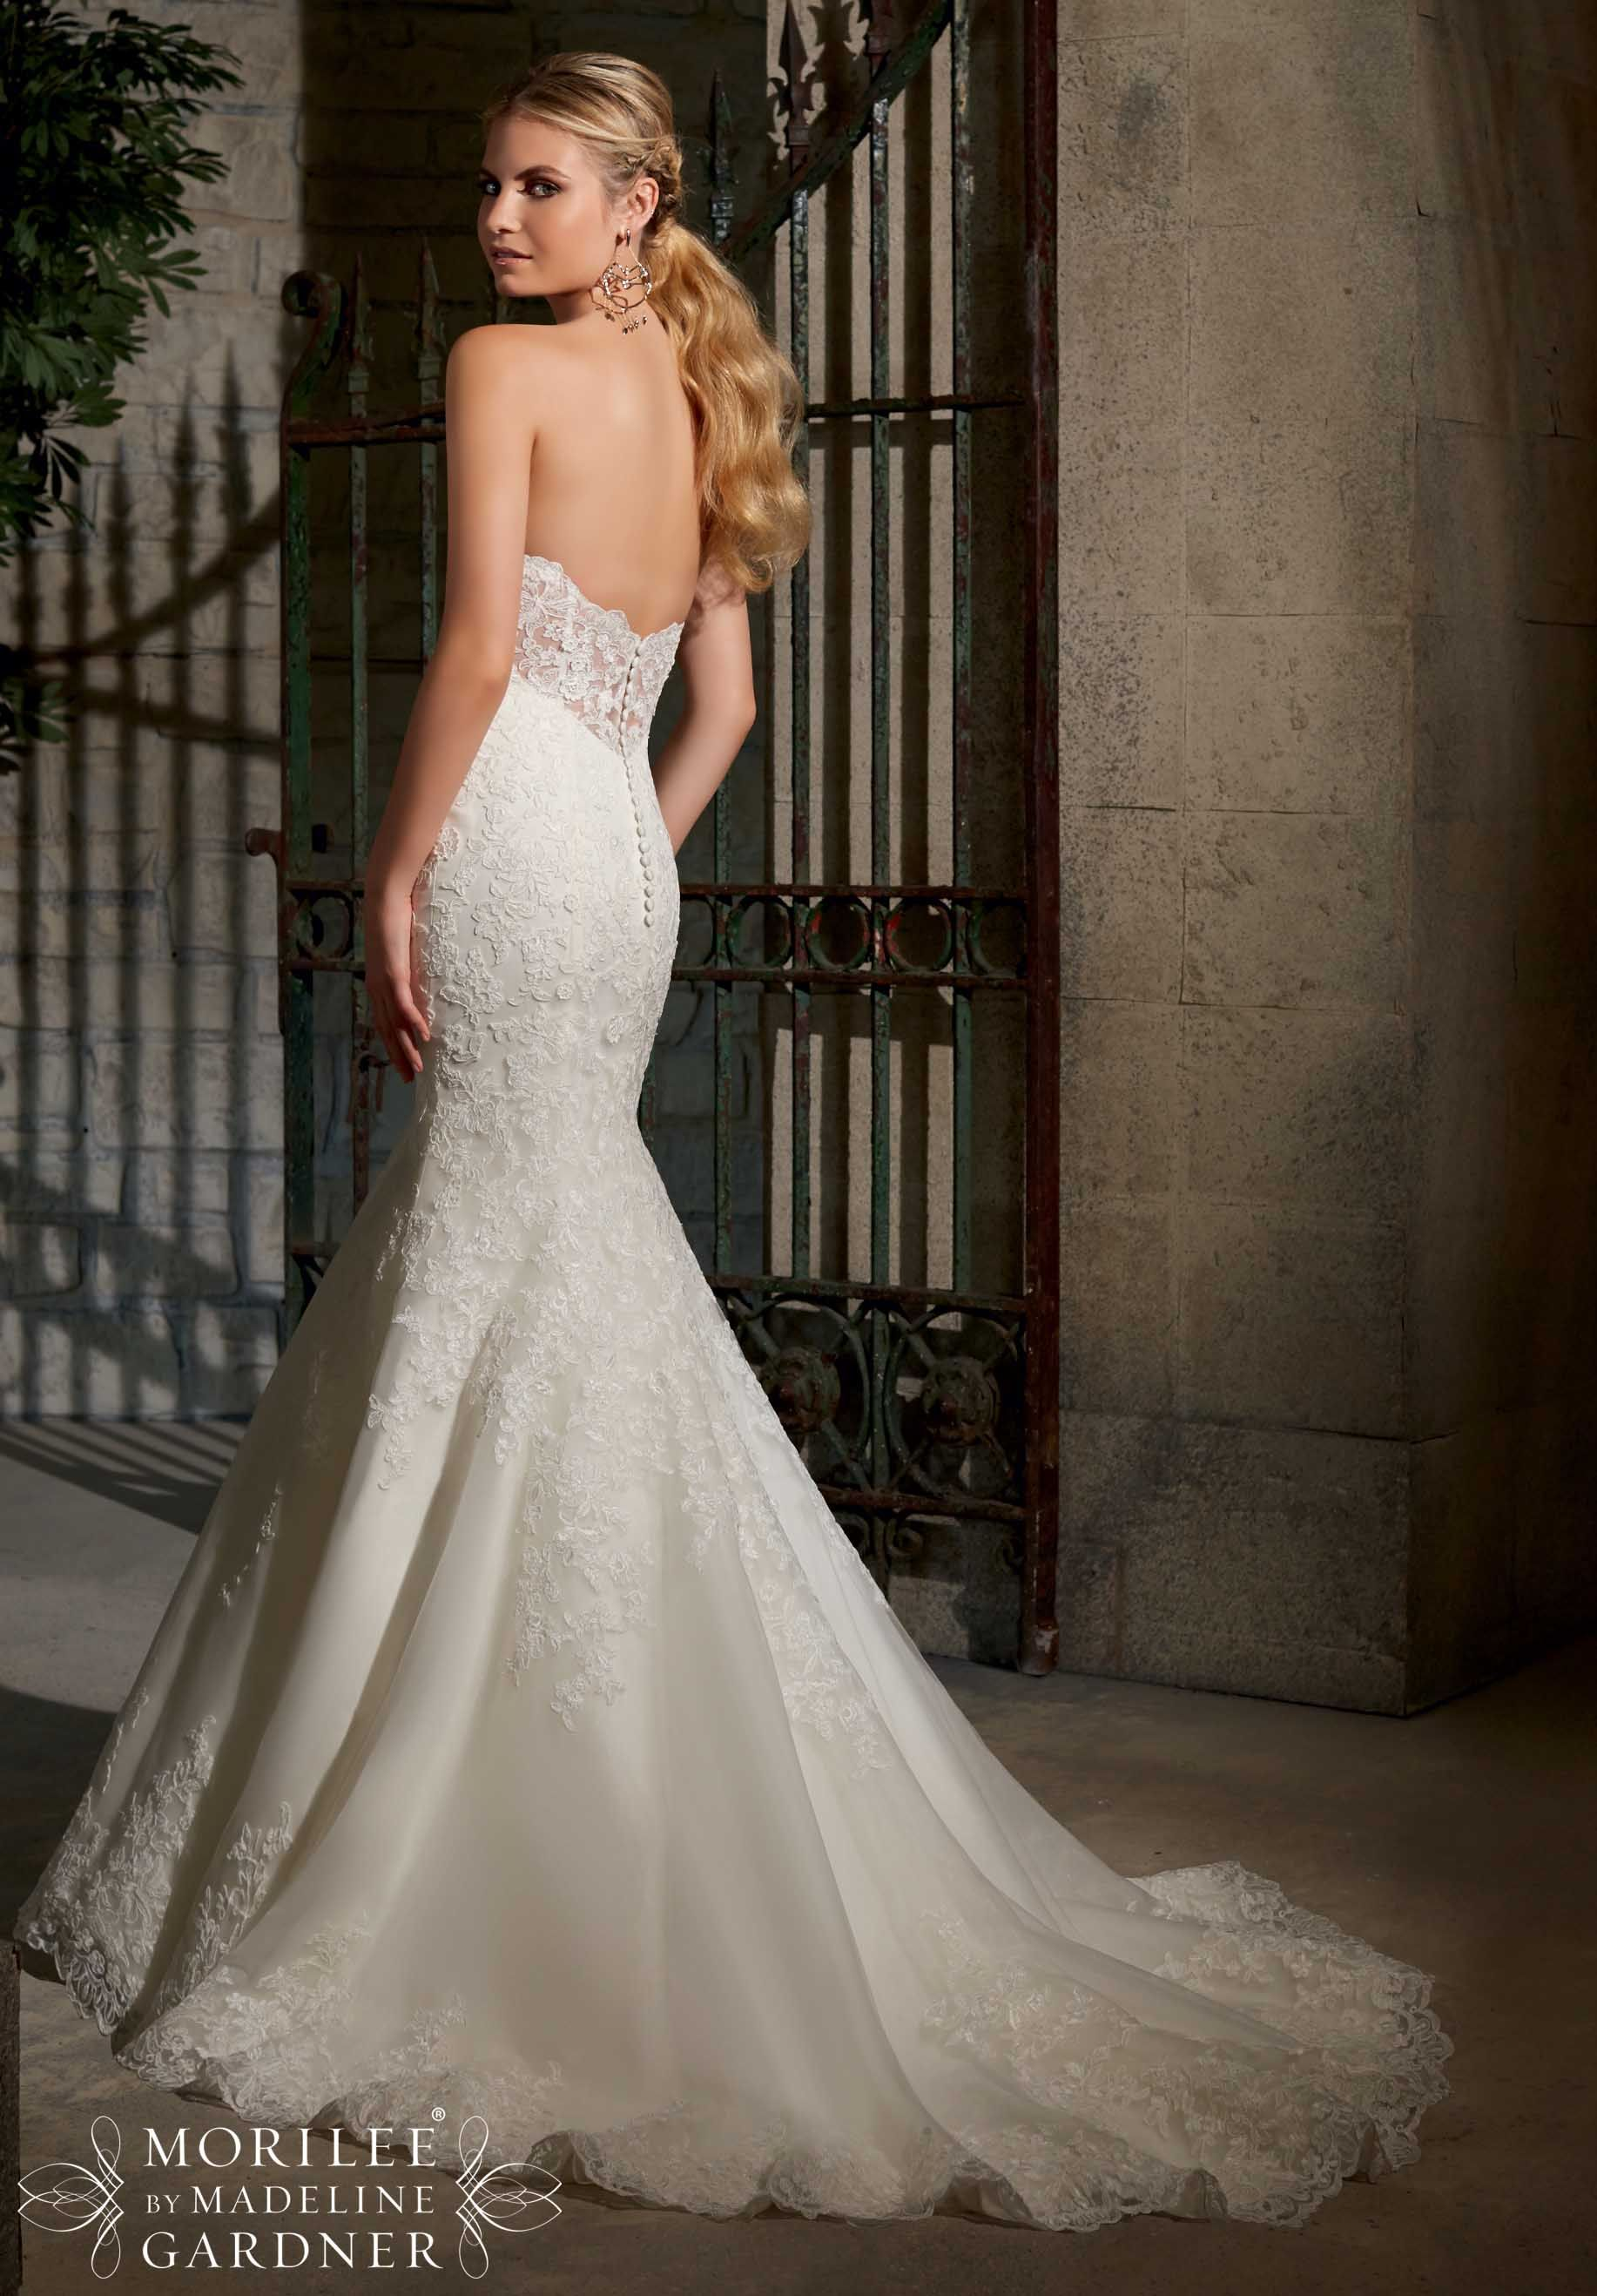 bridal gowns dresses elegant alencon lace on net with wide